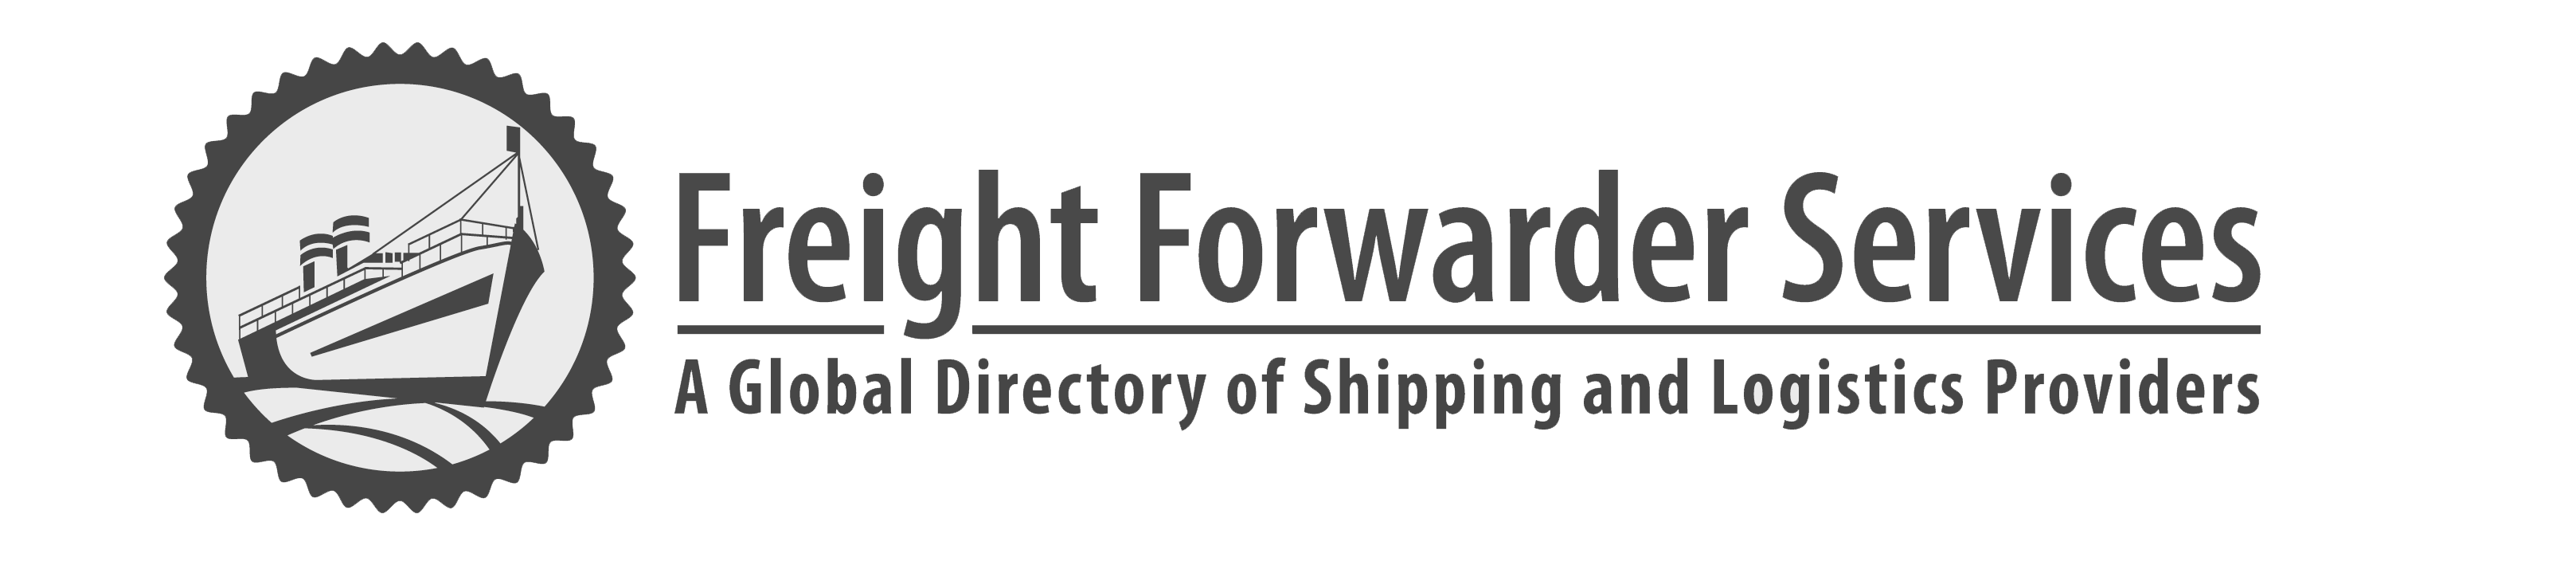 Freight Forwarder Services logo